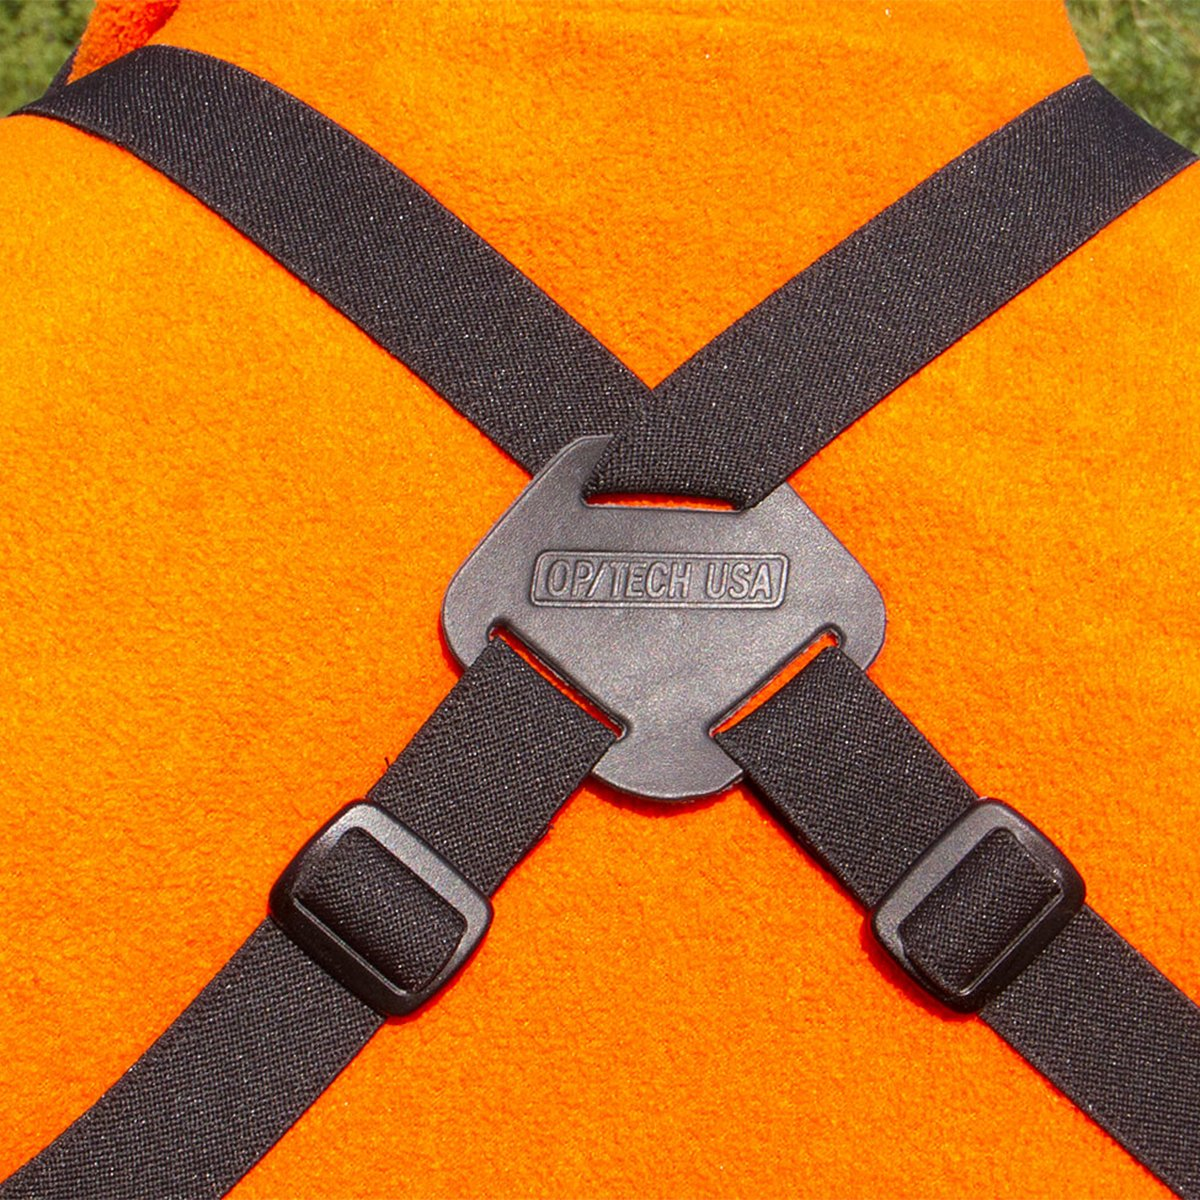 OP/TECH USA Bino/Cam Harness - Self-Adjusting Harness with Quick Disconnects - Elastic by OP/TECH USA (Image #2)